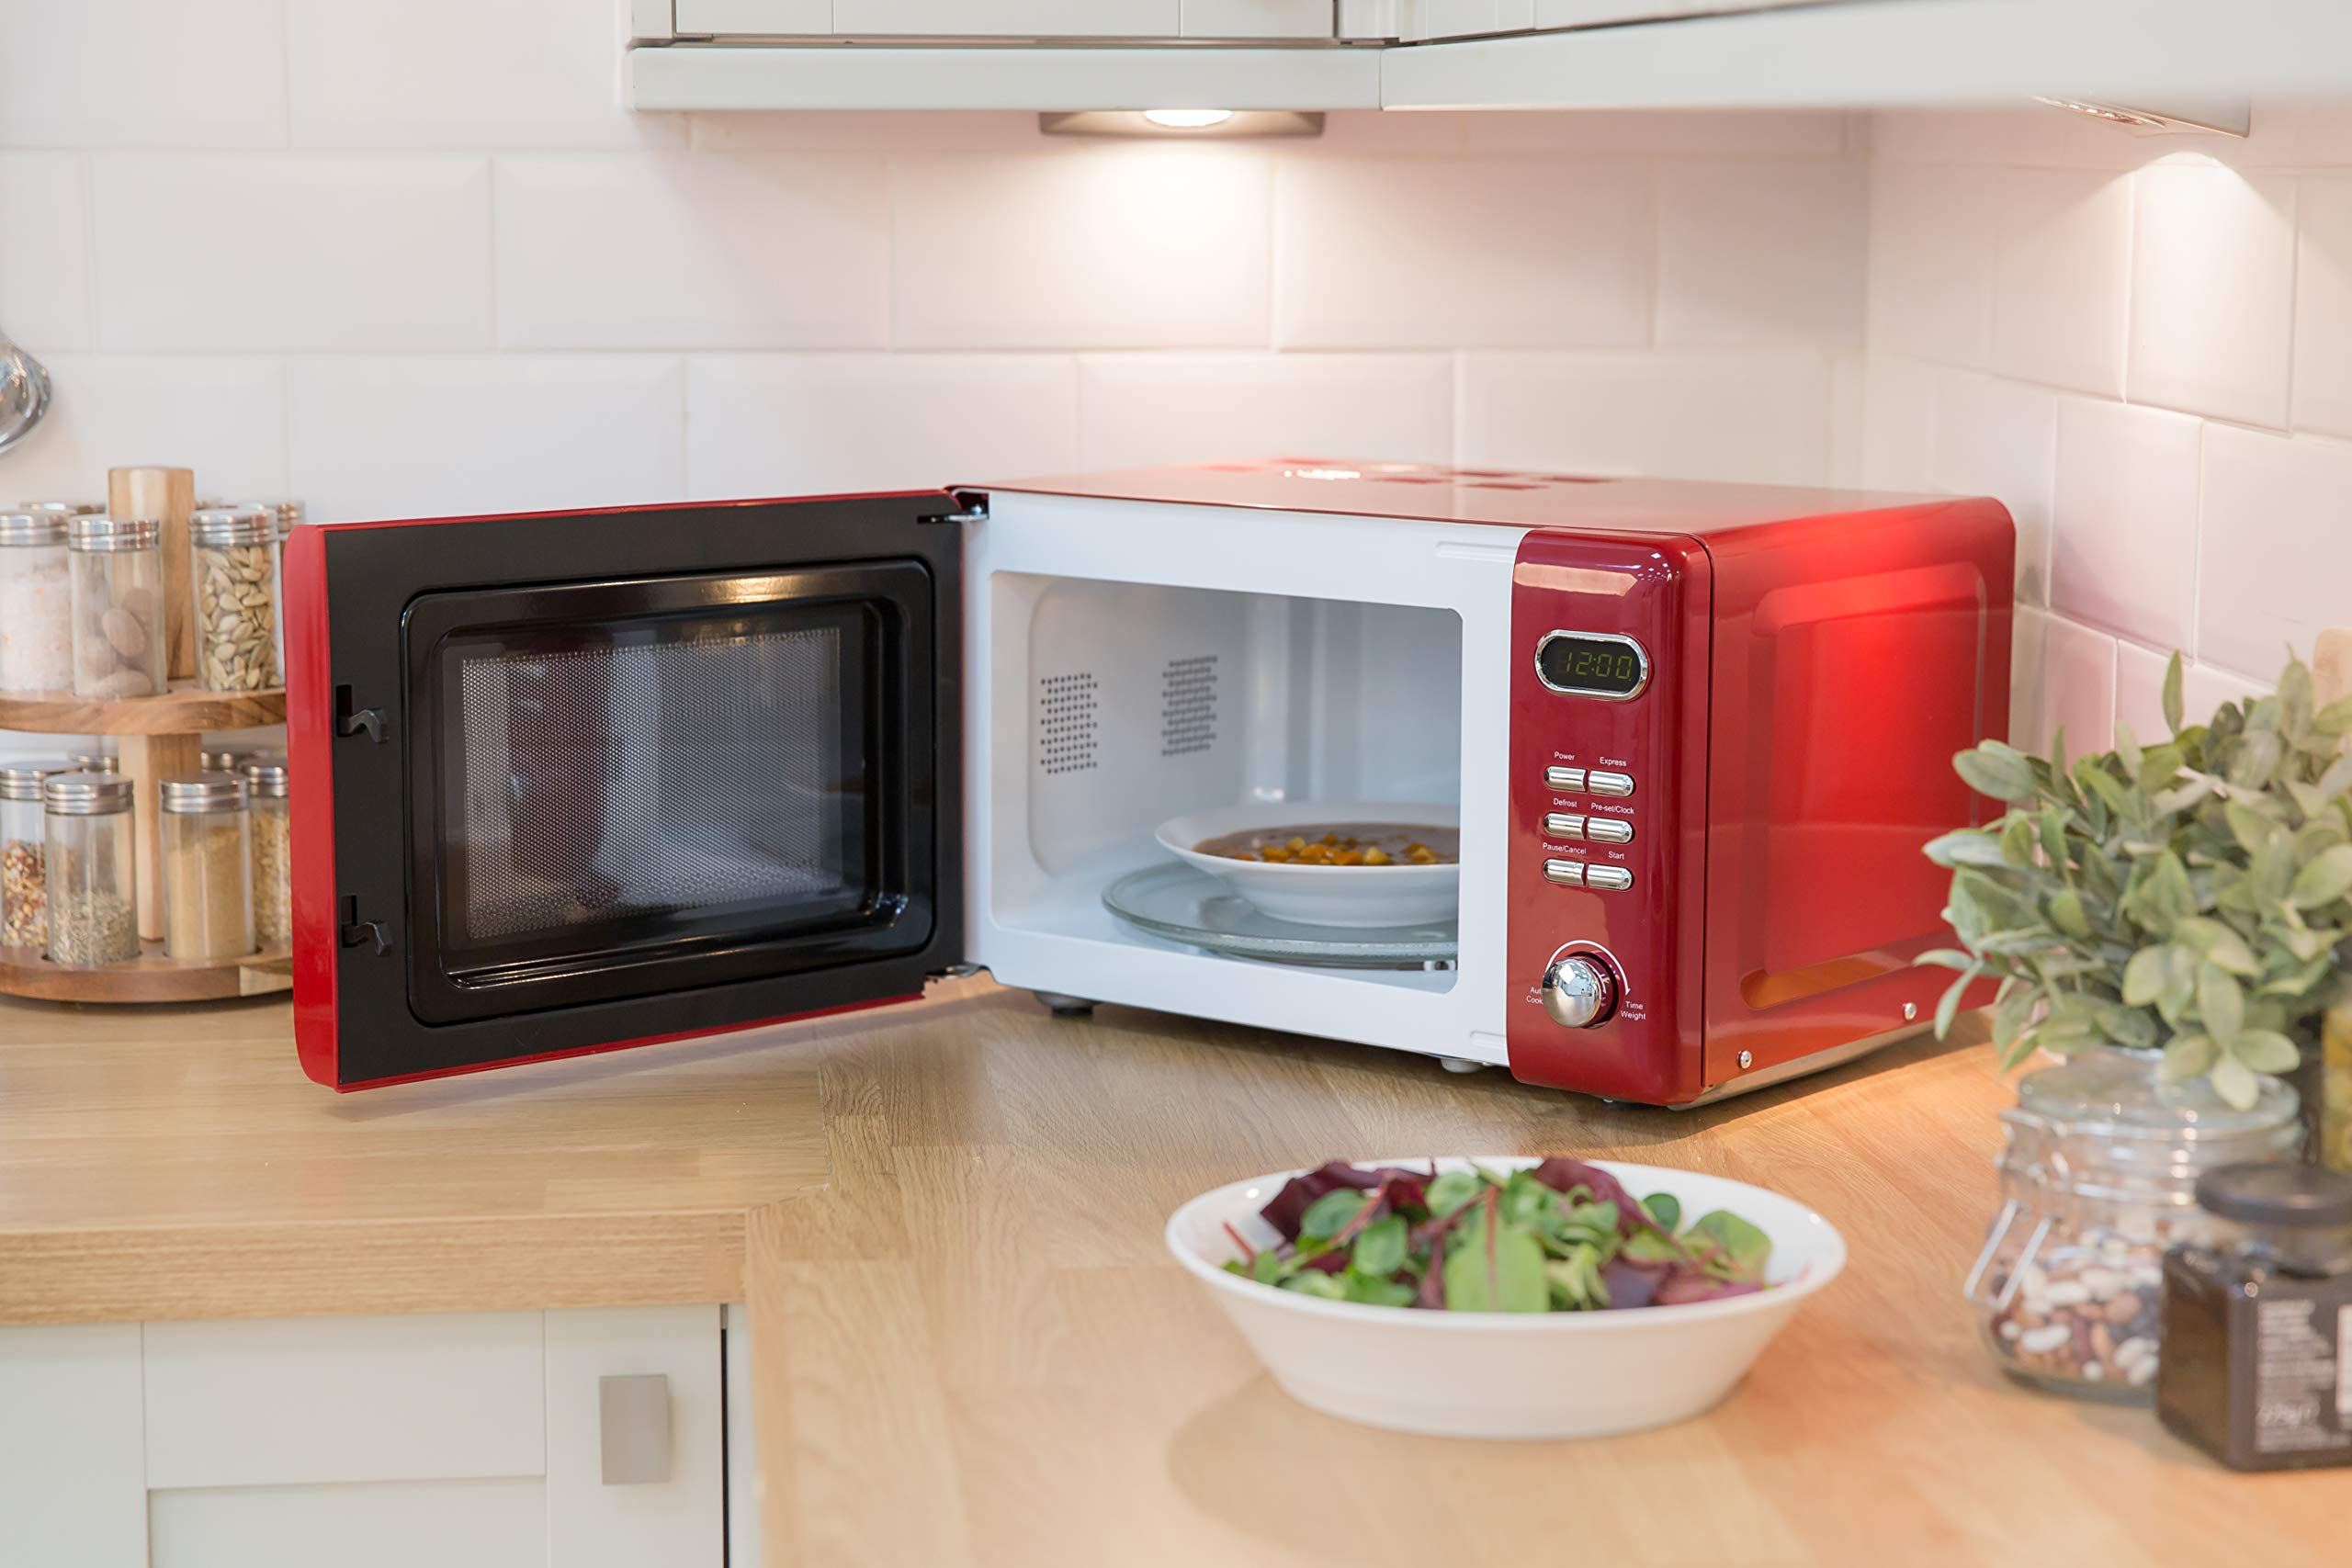 81fj0a0c7BL - Russell Hobbs RHRETMD806R Solo Microwave, Red, 17 liters